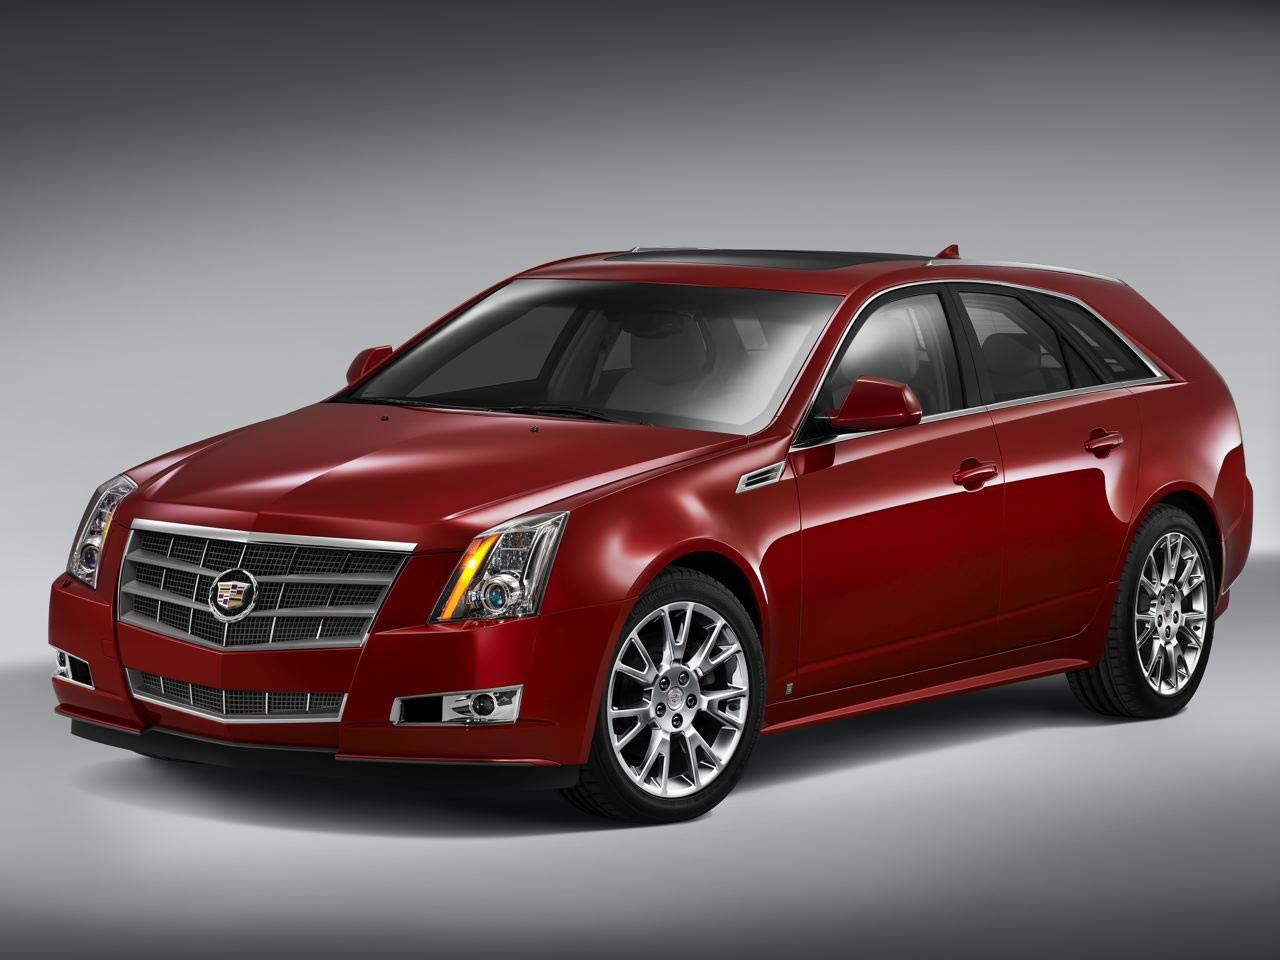 2010 cadillac cts sport wagon takes driving to the next. Black Bedroom Furniture Sets. Home Design Ideas